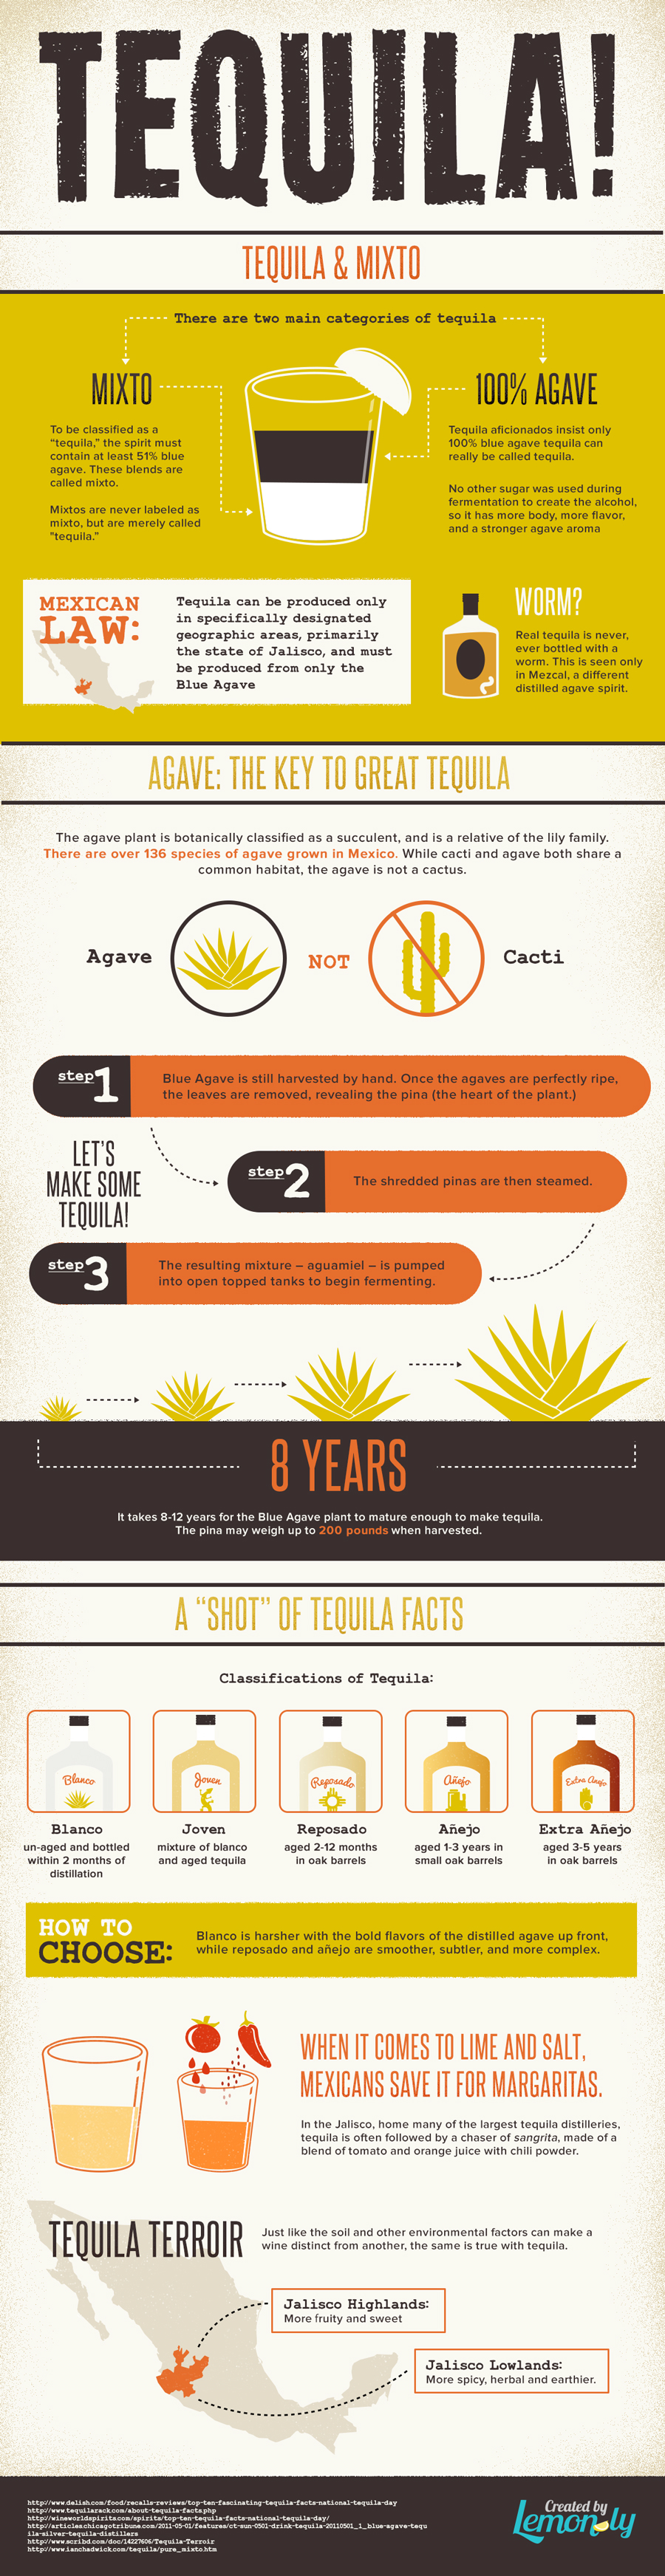 Love It or Hate It, Tequila Raises Passion: Unbottling Some Tequila Truths - Infographic